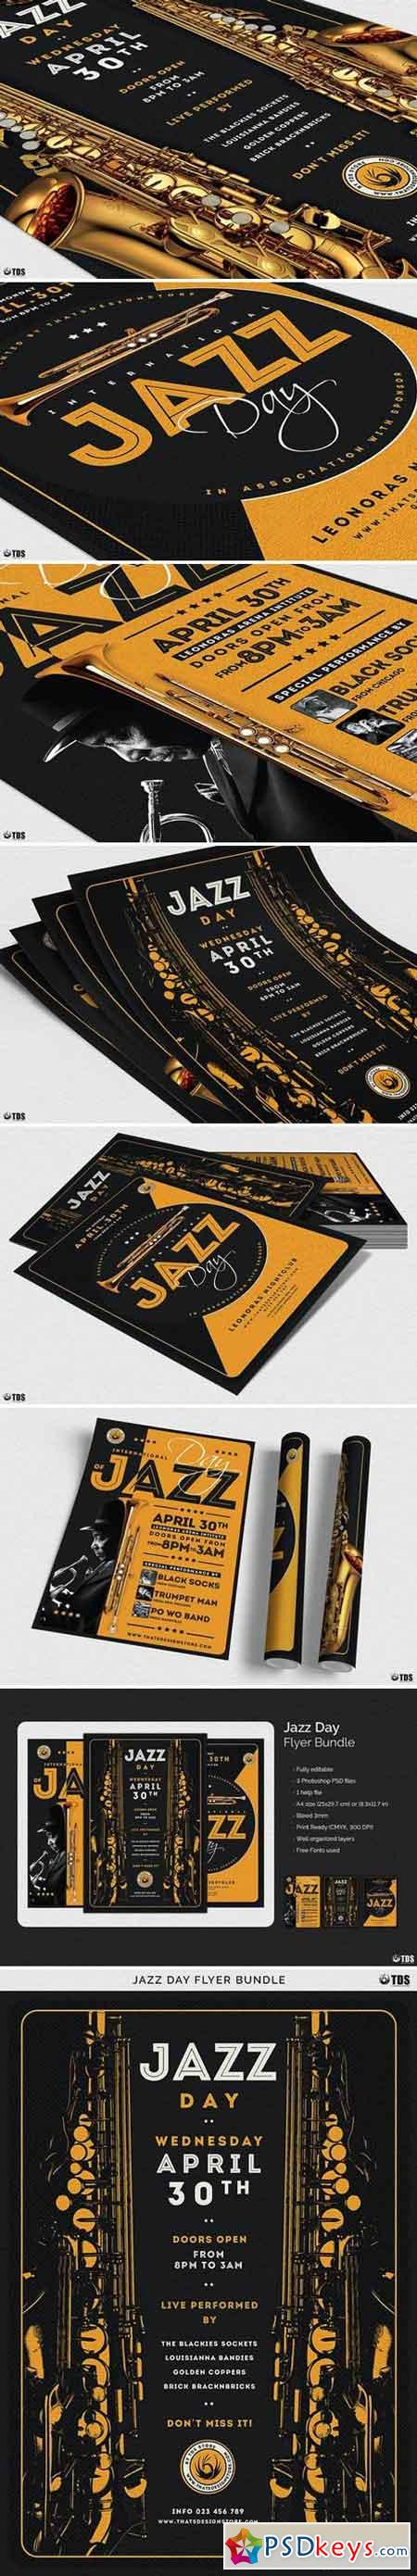 Jazz Day Flyer Bundle 2070204